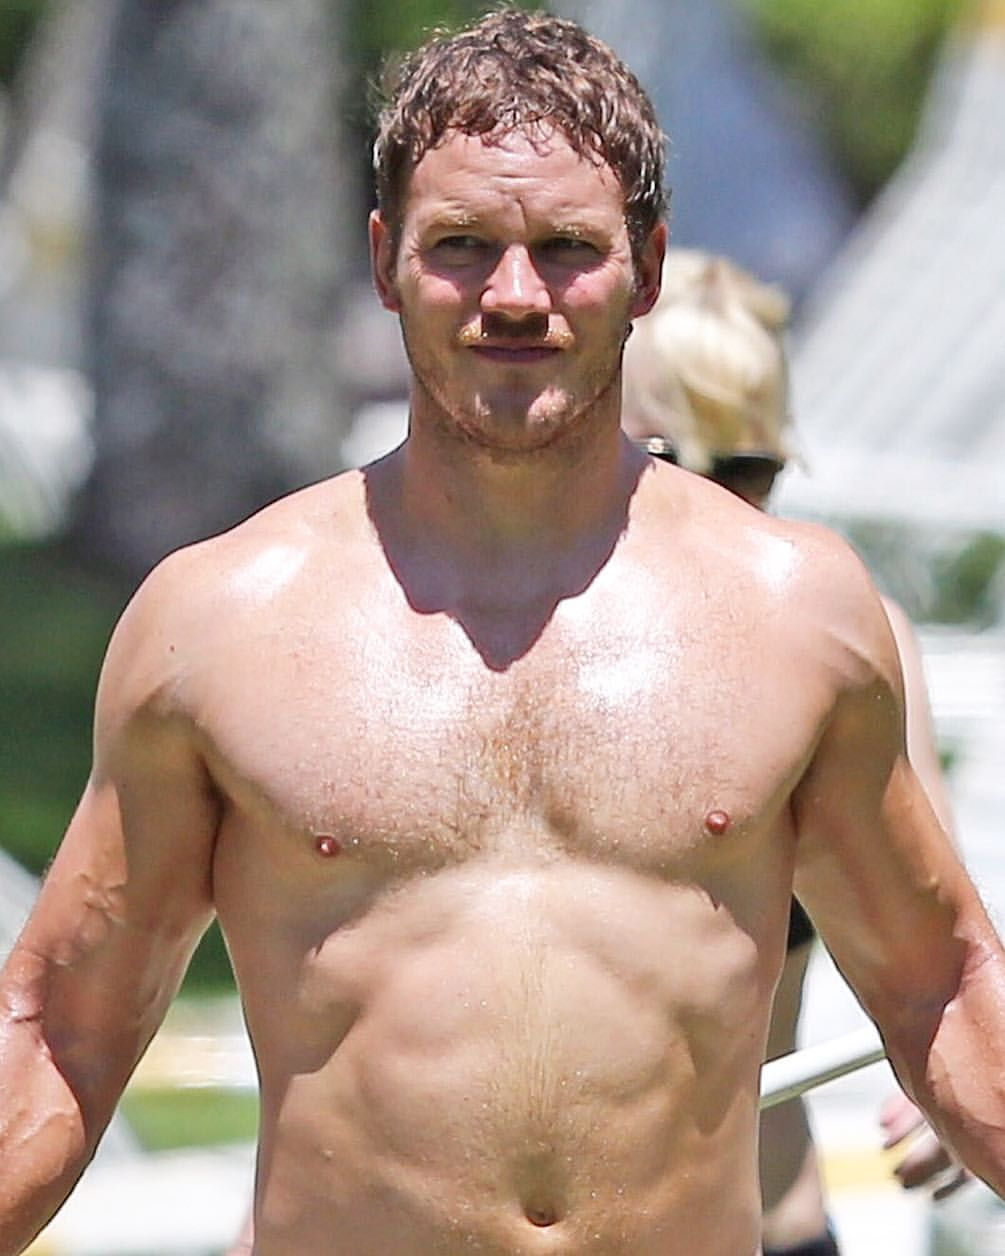 Chris Pratt Chris Pratt Chris Pratt Shirtless Chris